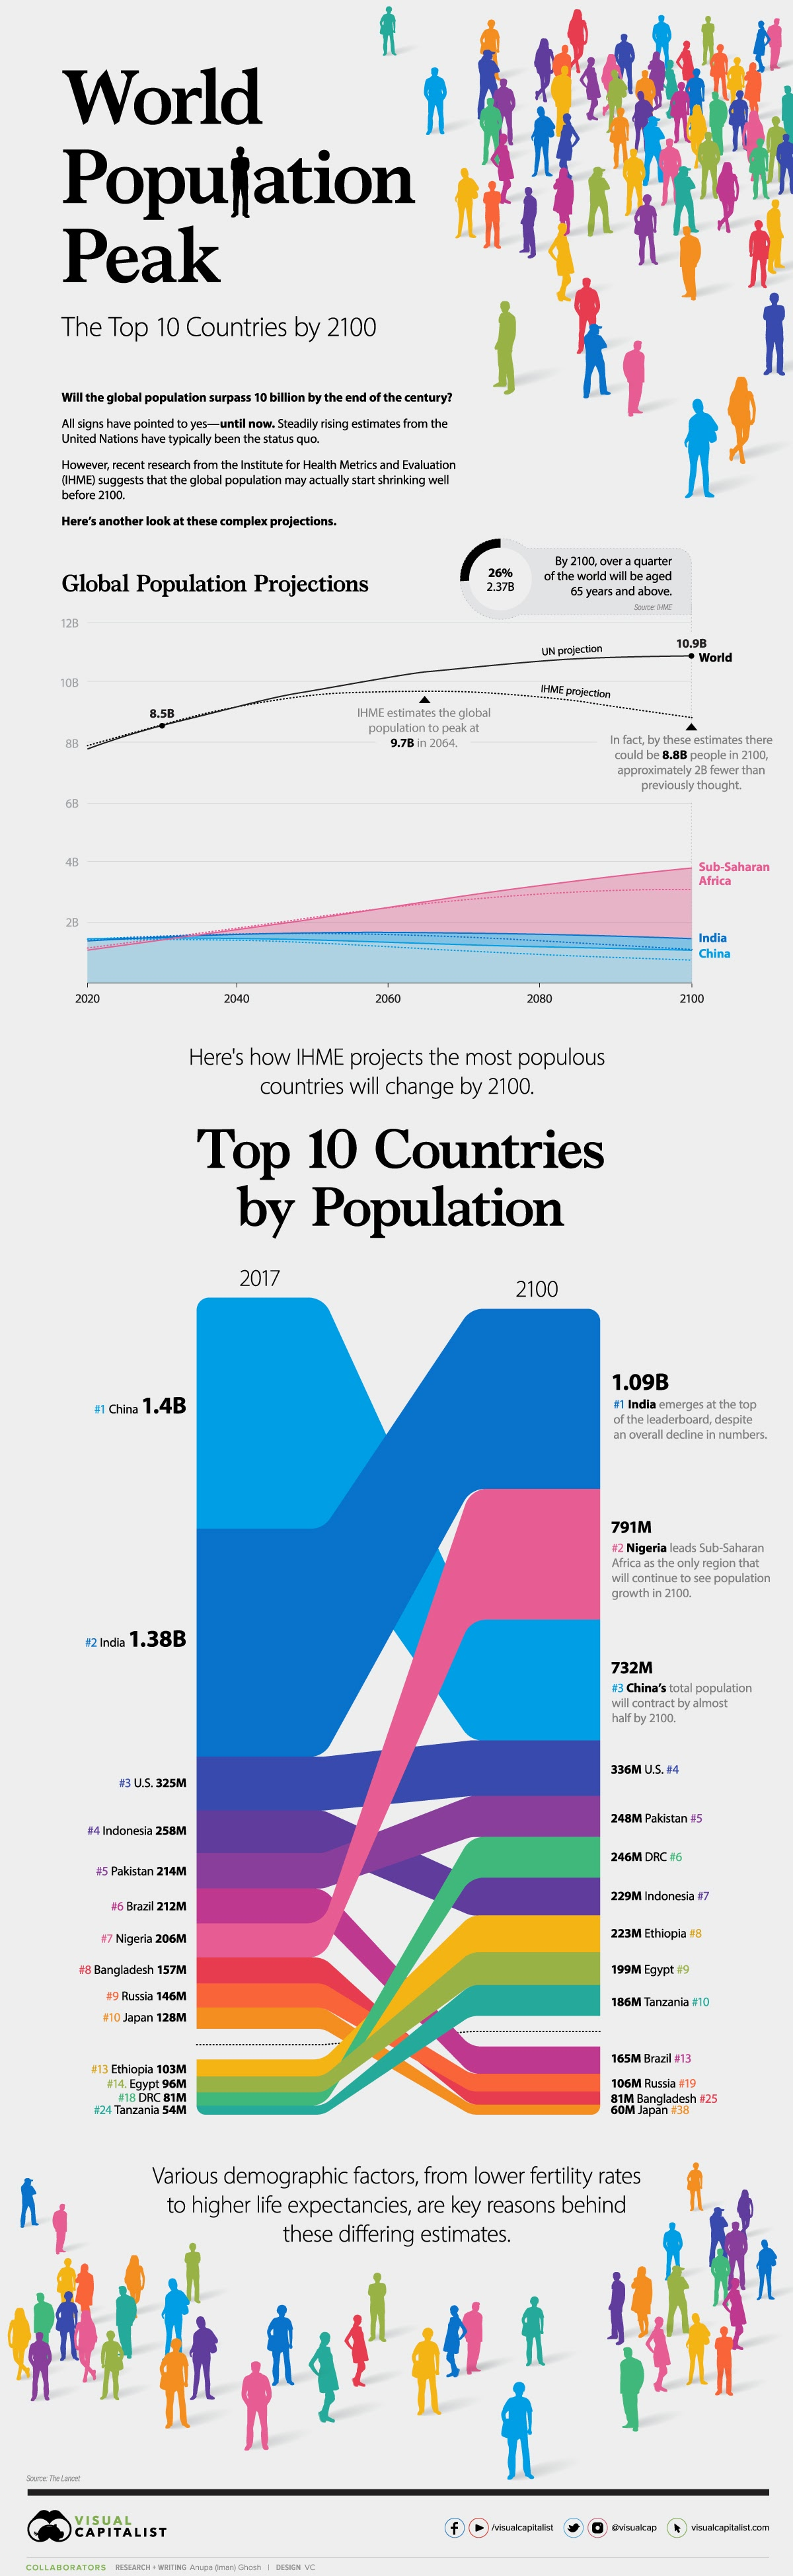 the-world-population-in-2100-by-country-infographic